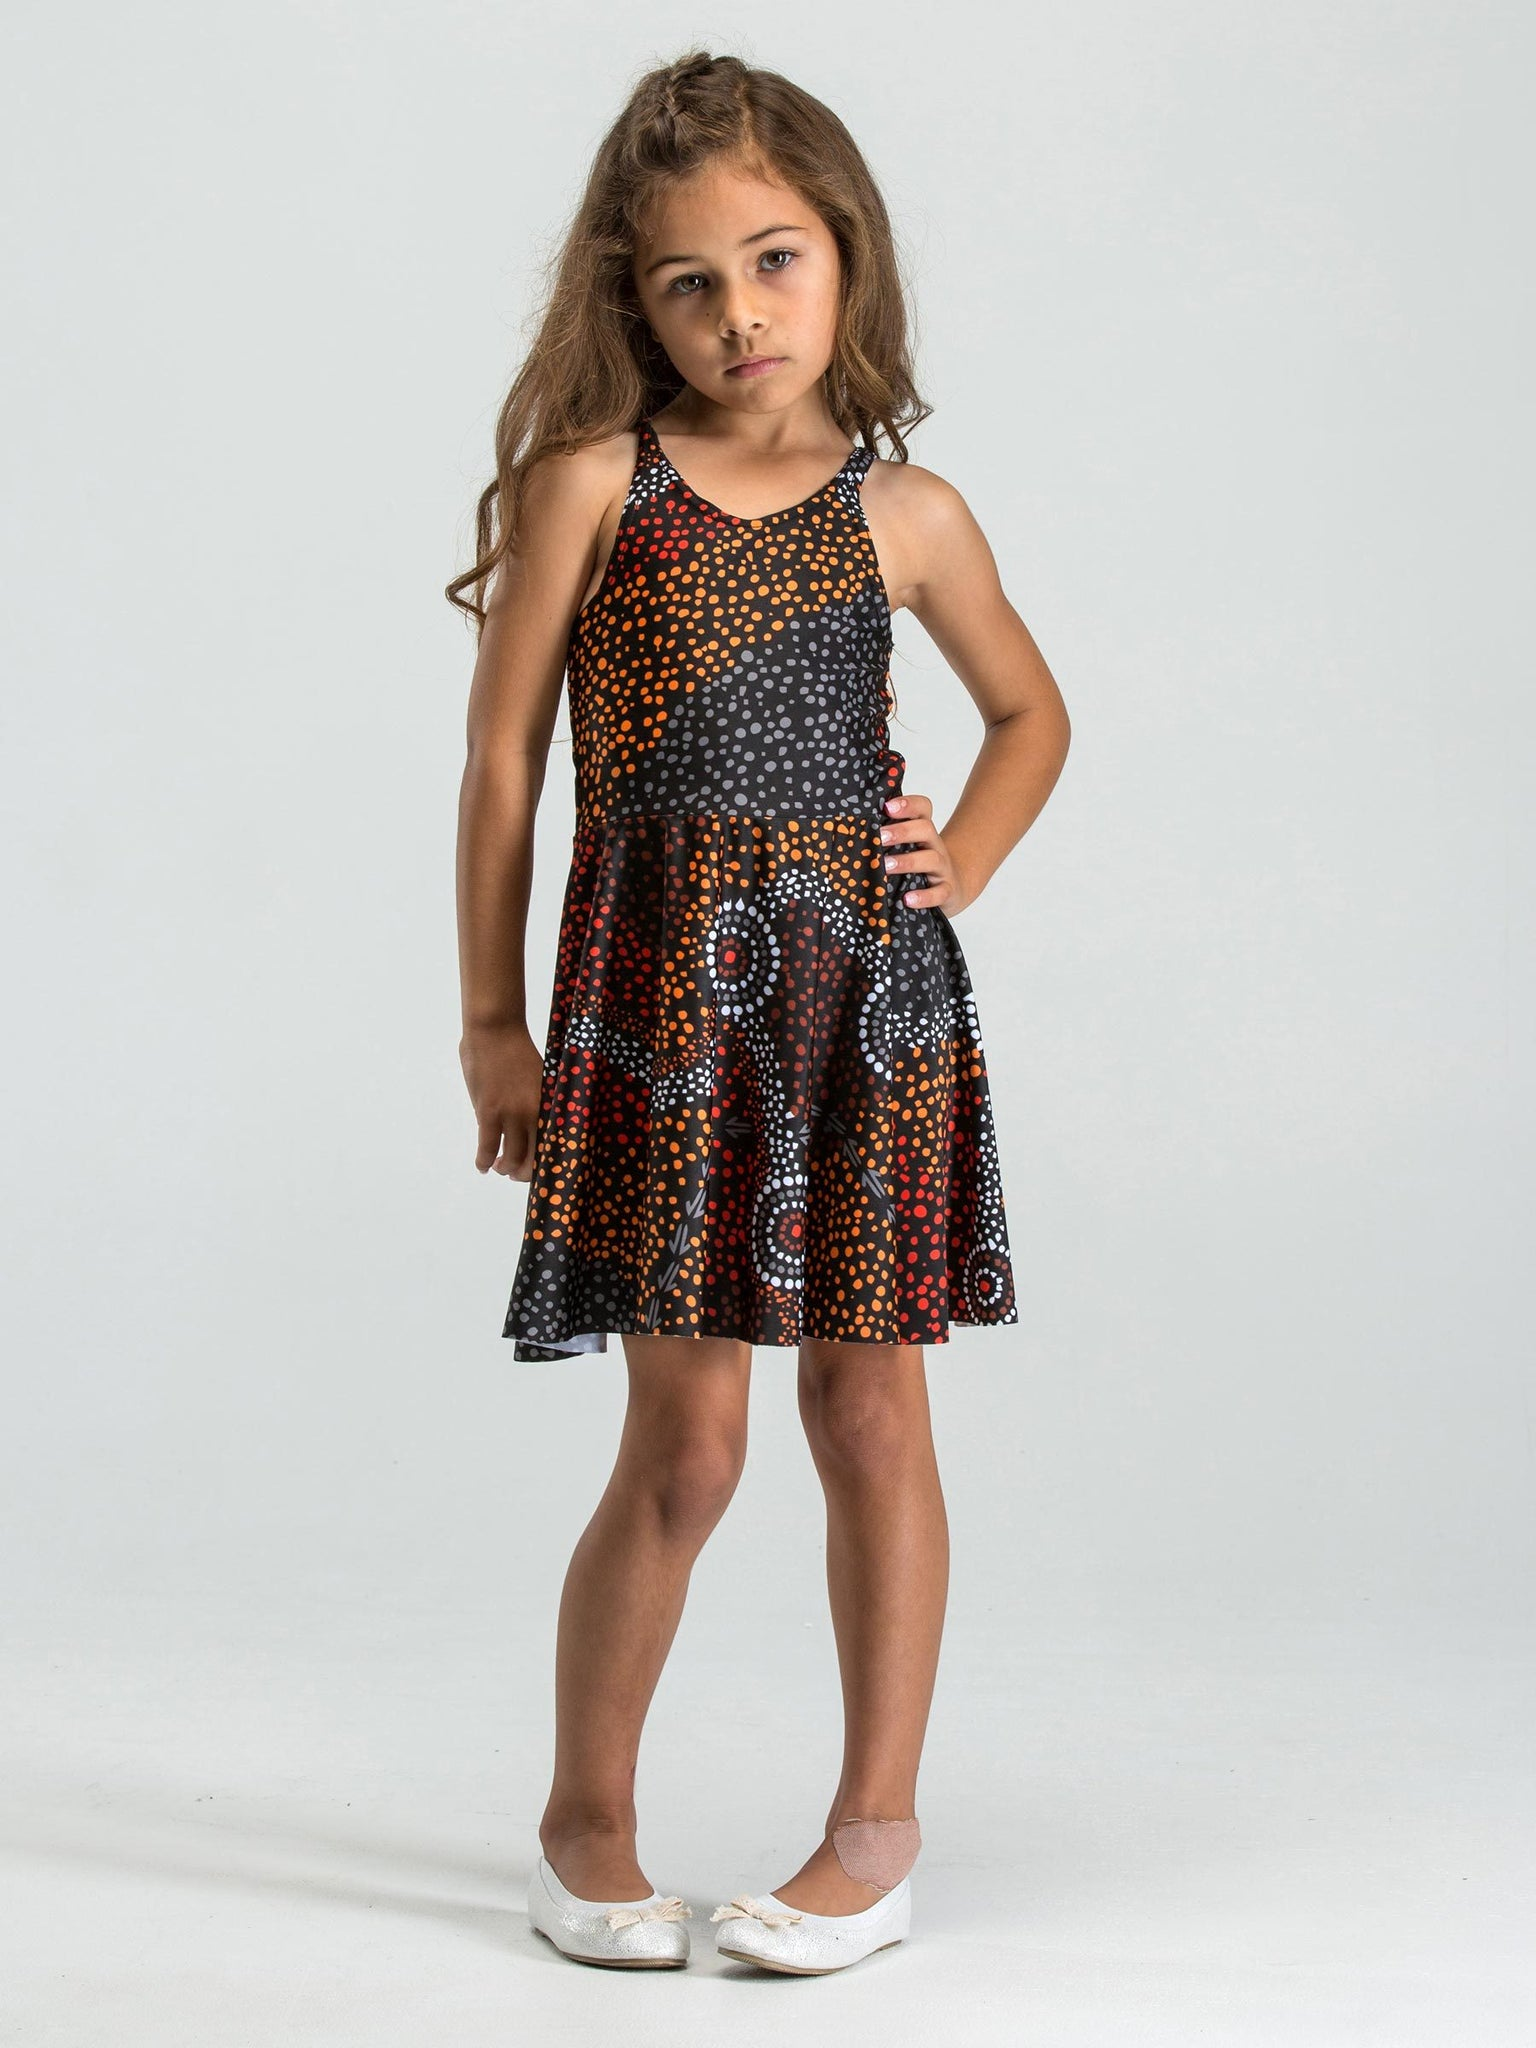 Dreamtime kids' skater dress